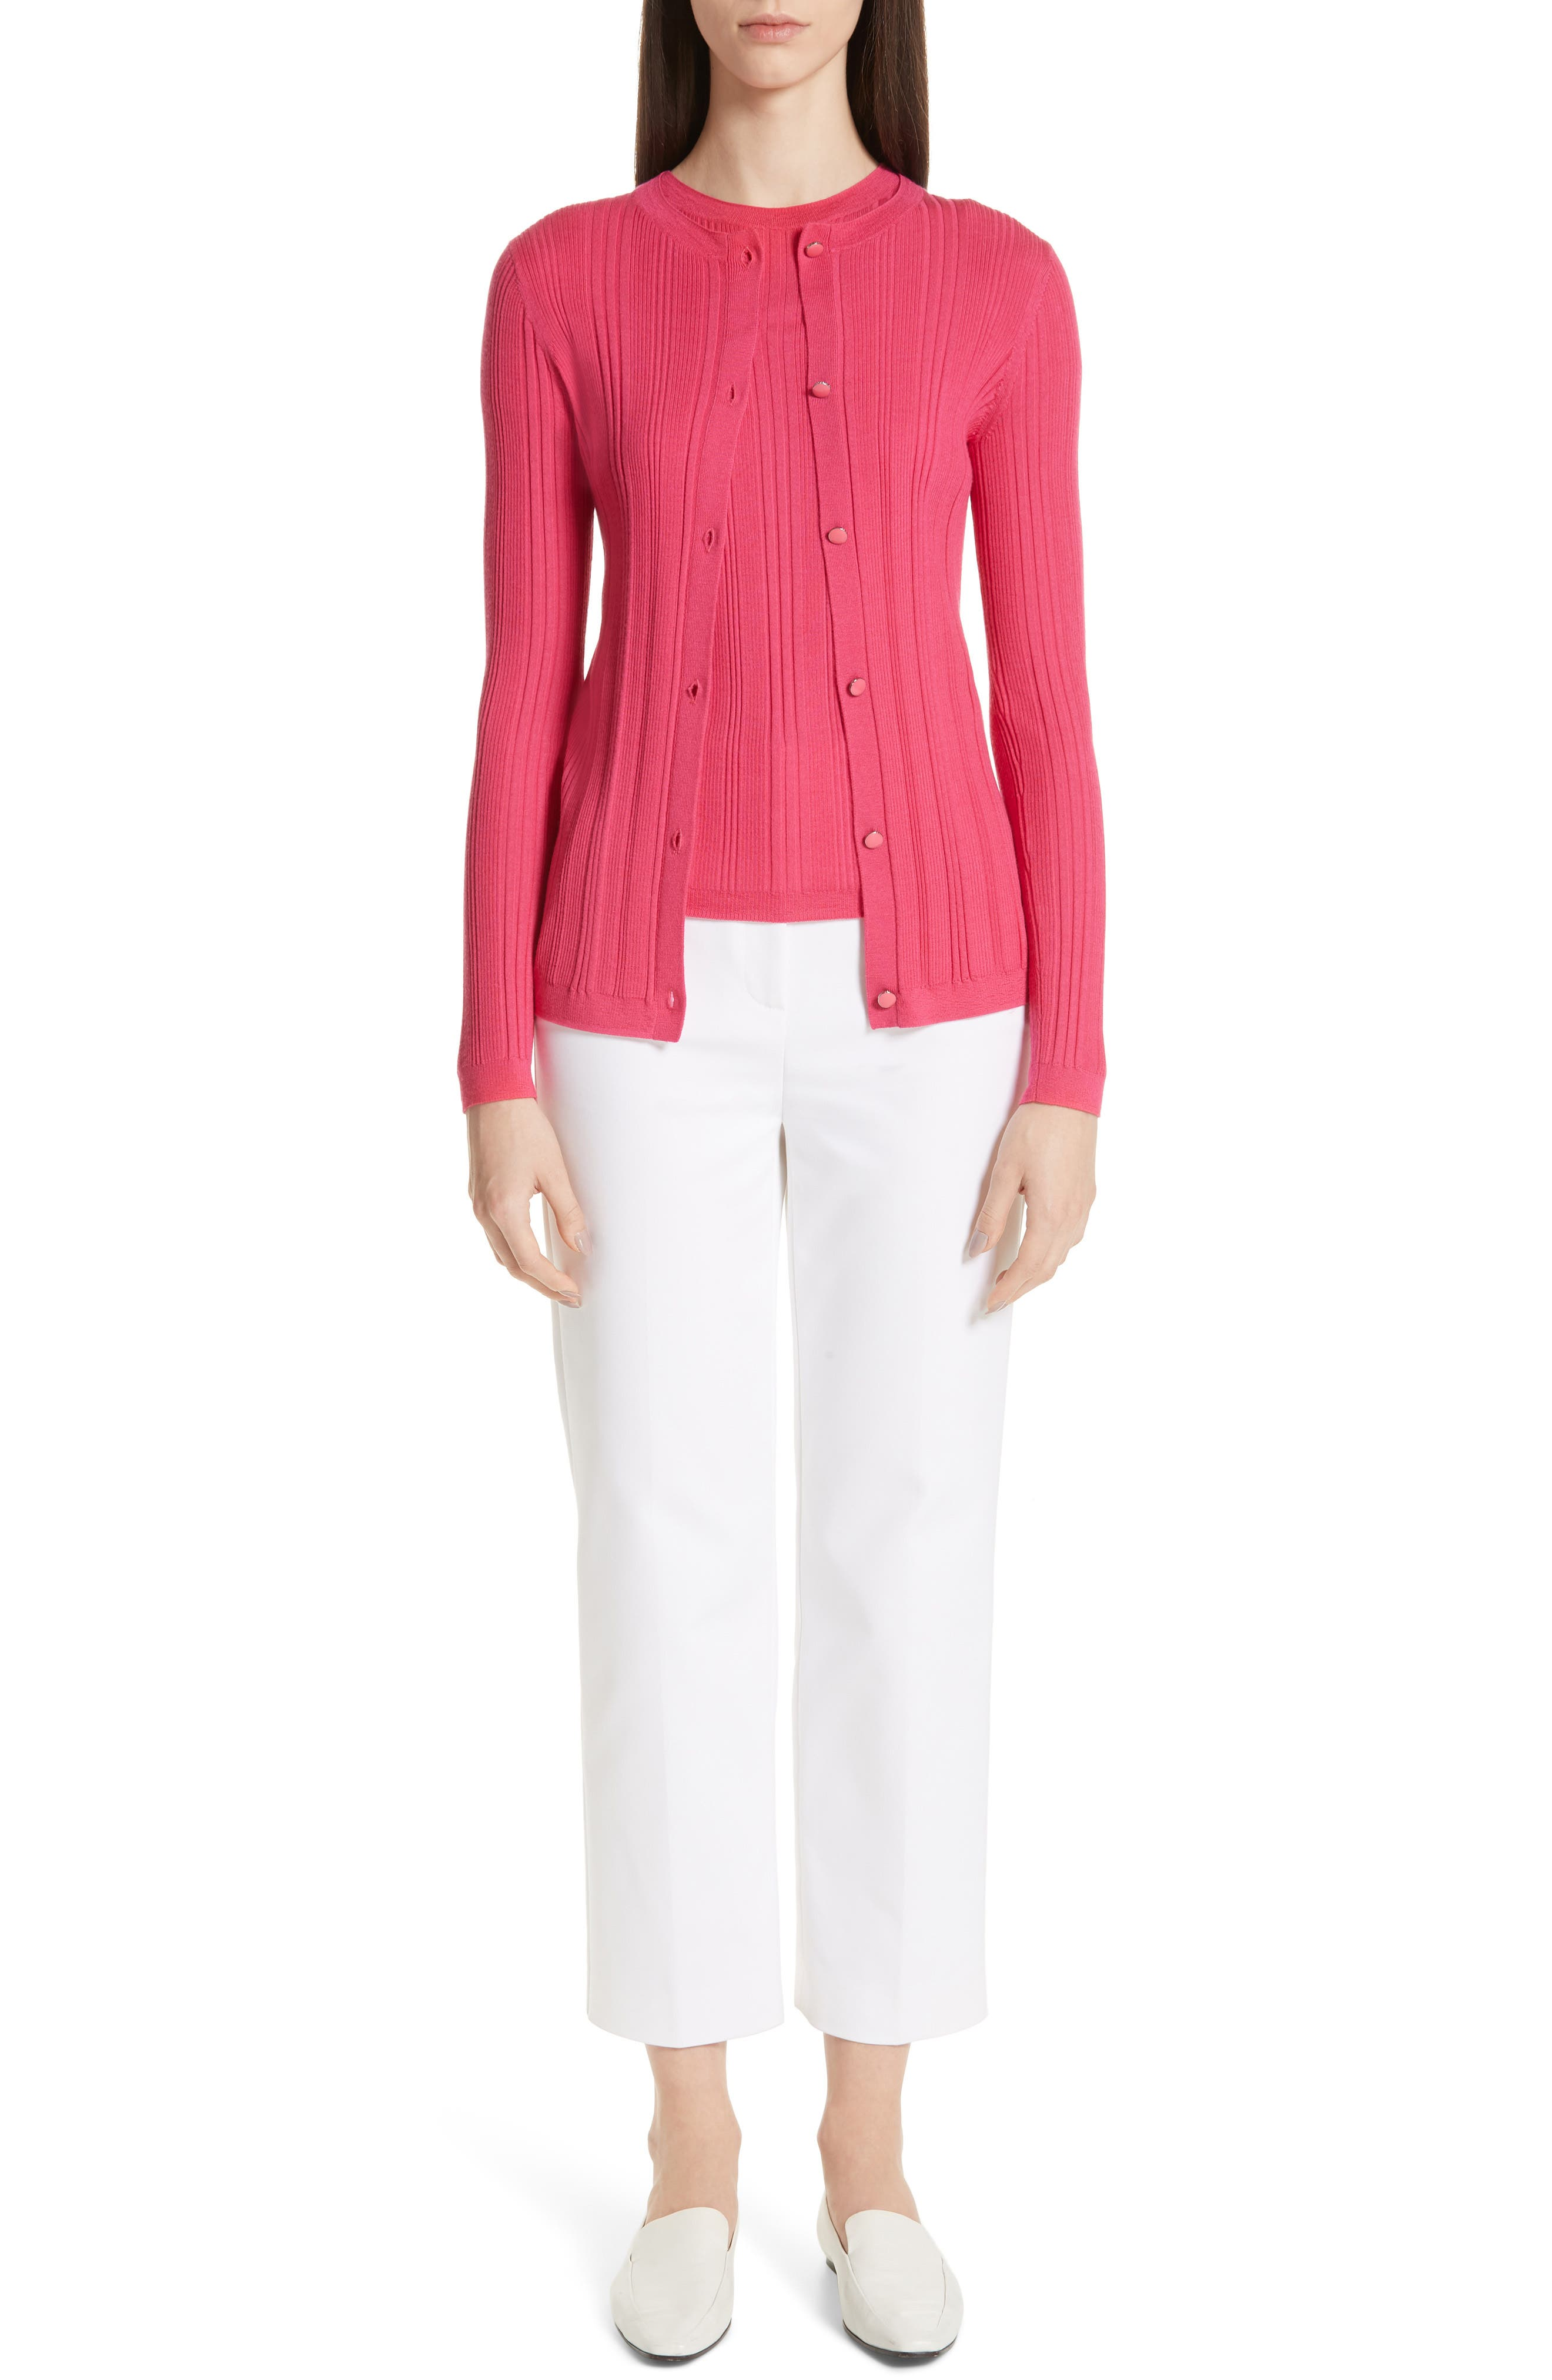 ST. JOHN COLLECTION, Superfine Variegated Rib Sweater, Alternate thumbnail 7, color, FLAMINGO